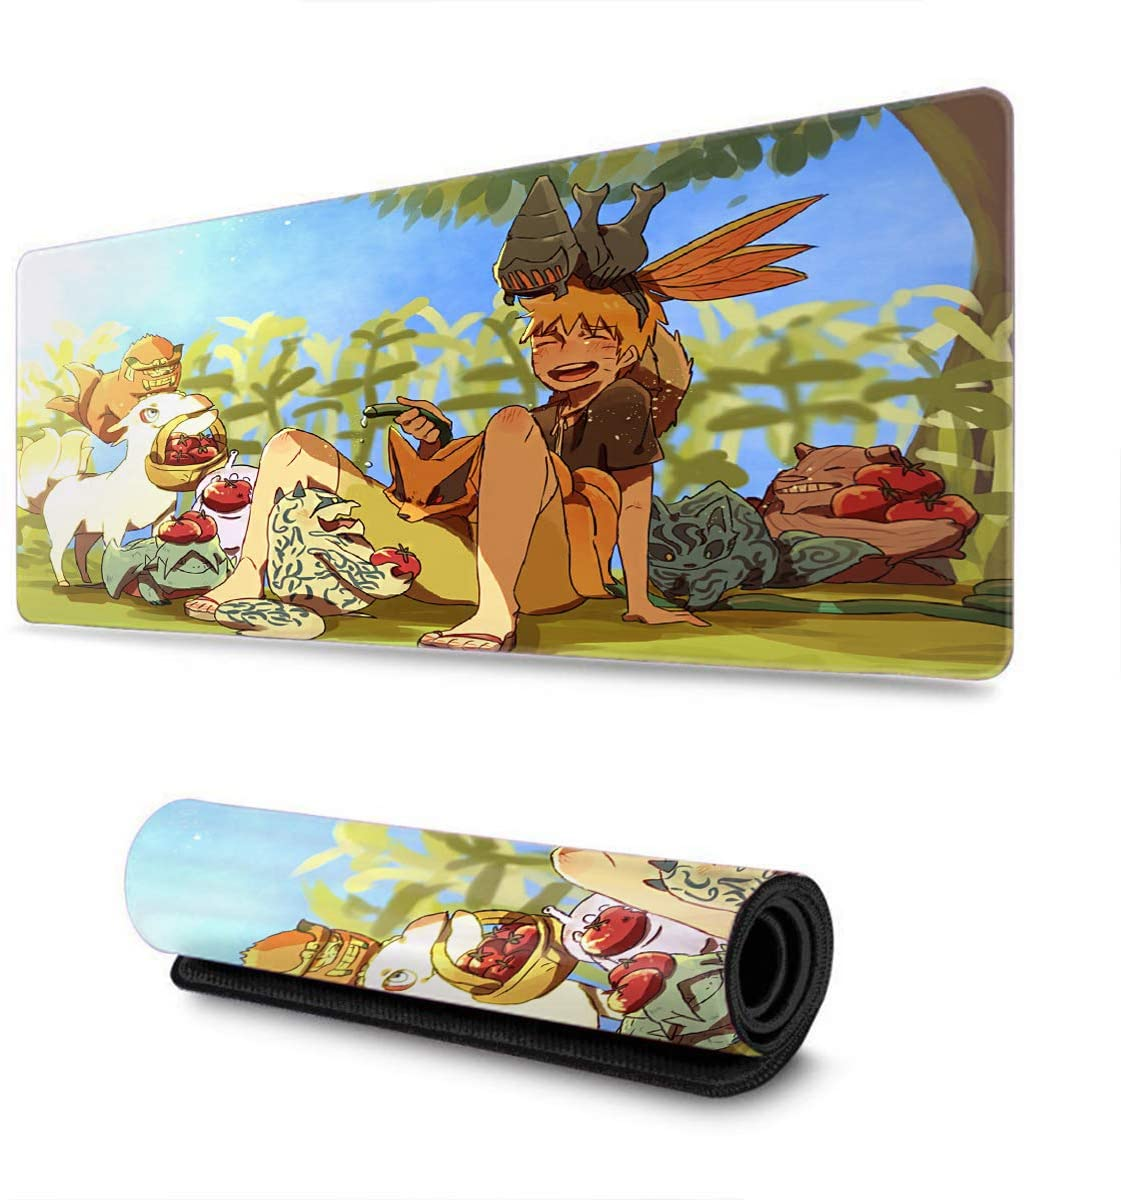 Extended Size Professional Gaming Mouse Pad Professional Gaming Mouse Pad for Uzumaki Naruto Sakura, Custom Design Stitched Edges Ultra Thick 3mm-11.8x31.5x0.2 in